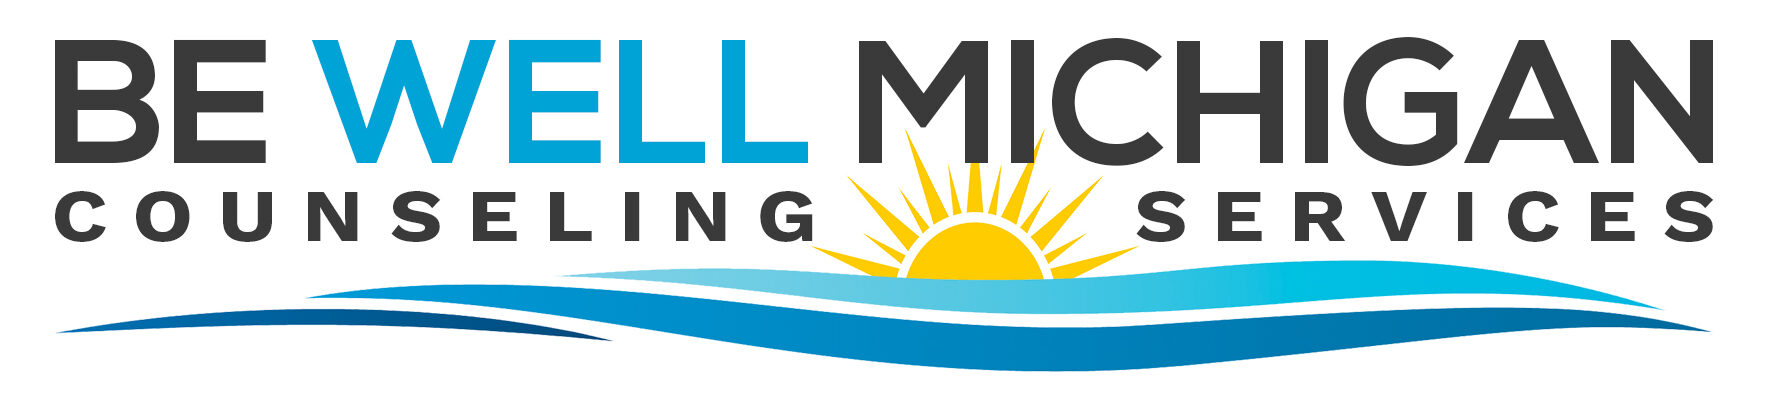 Be Well Michigan Counseling Services, LLC